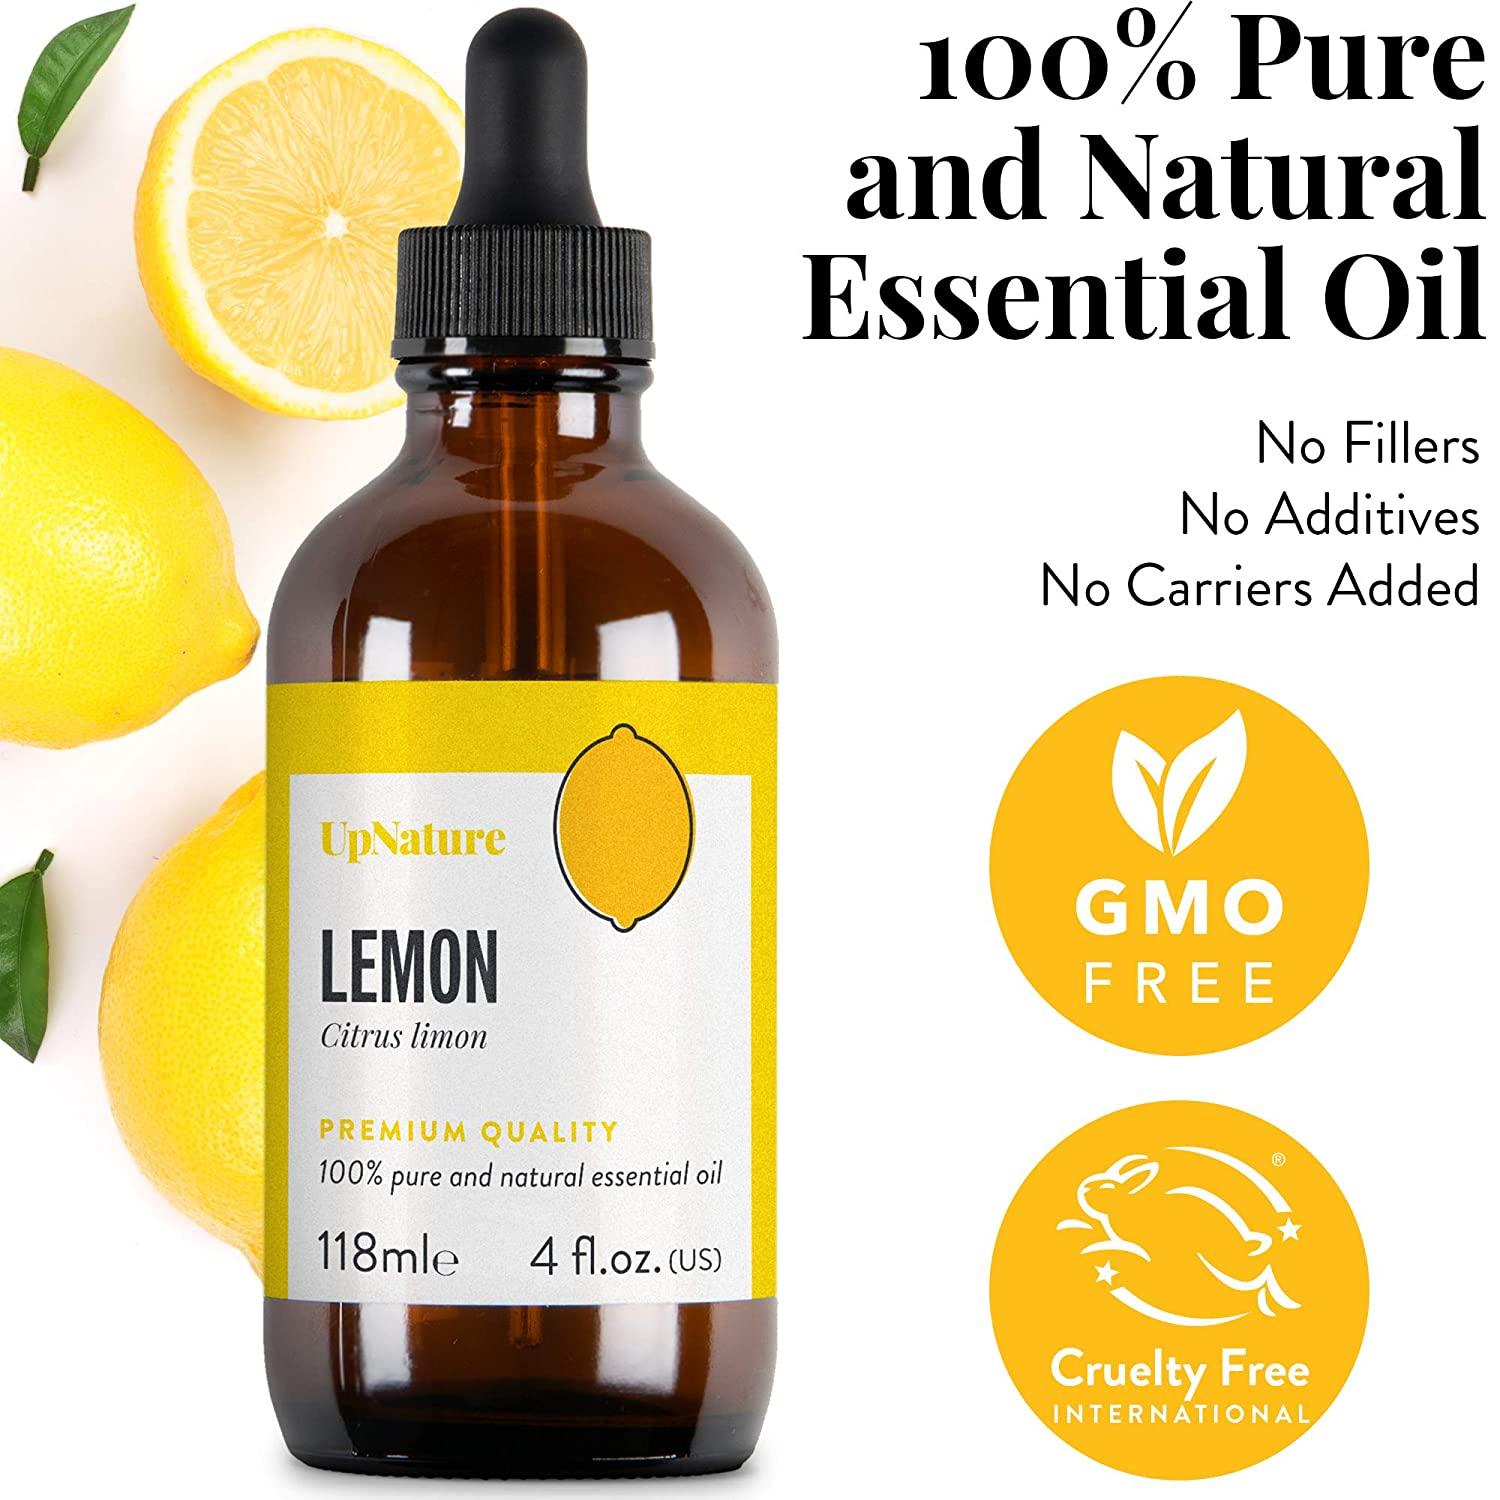 Lemon Oil Essential Oil 4 OZ – Pure Lemon Oil - Lemon Oil for Skin and Hair, Energy Boost, Focus, Motivation, DIY Natural All Purpose Cleaner - Therapeutic Grade, Undiluted, Non-GMO, Aromatherapy